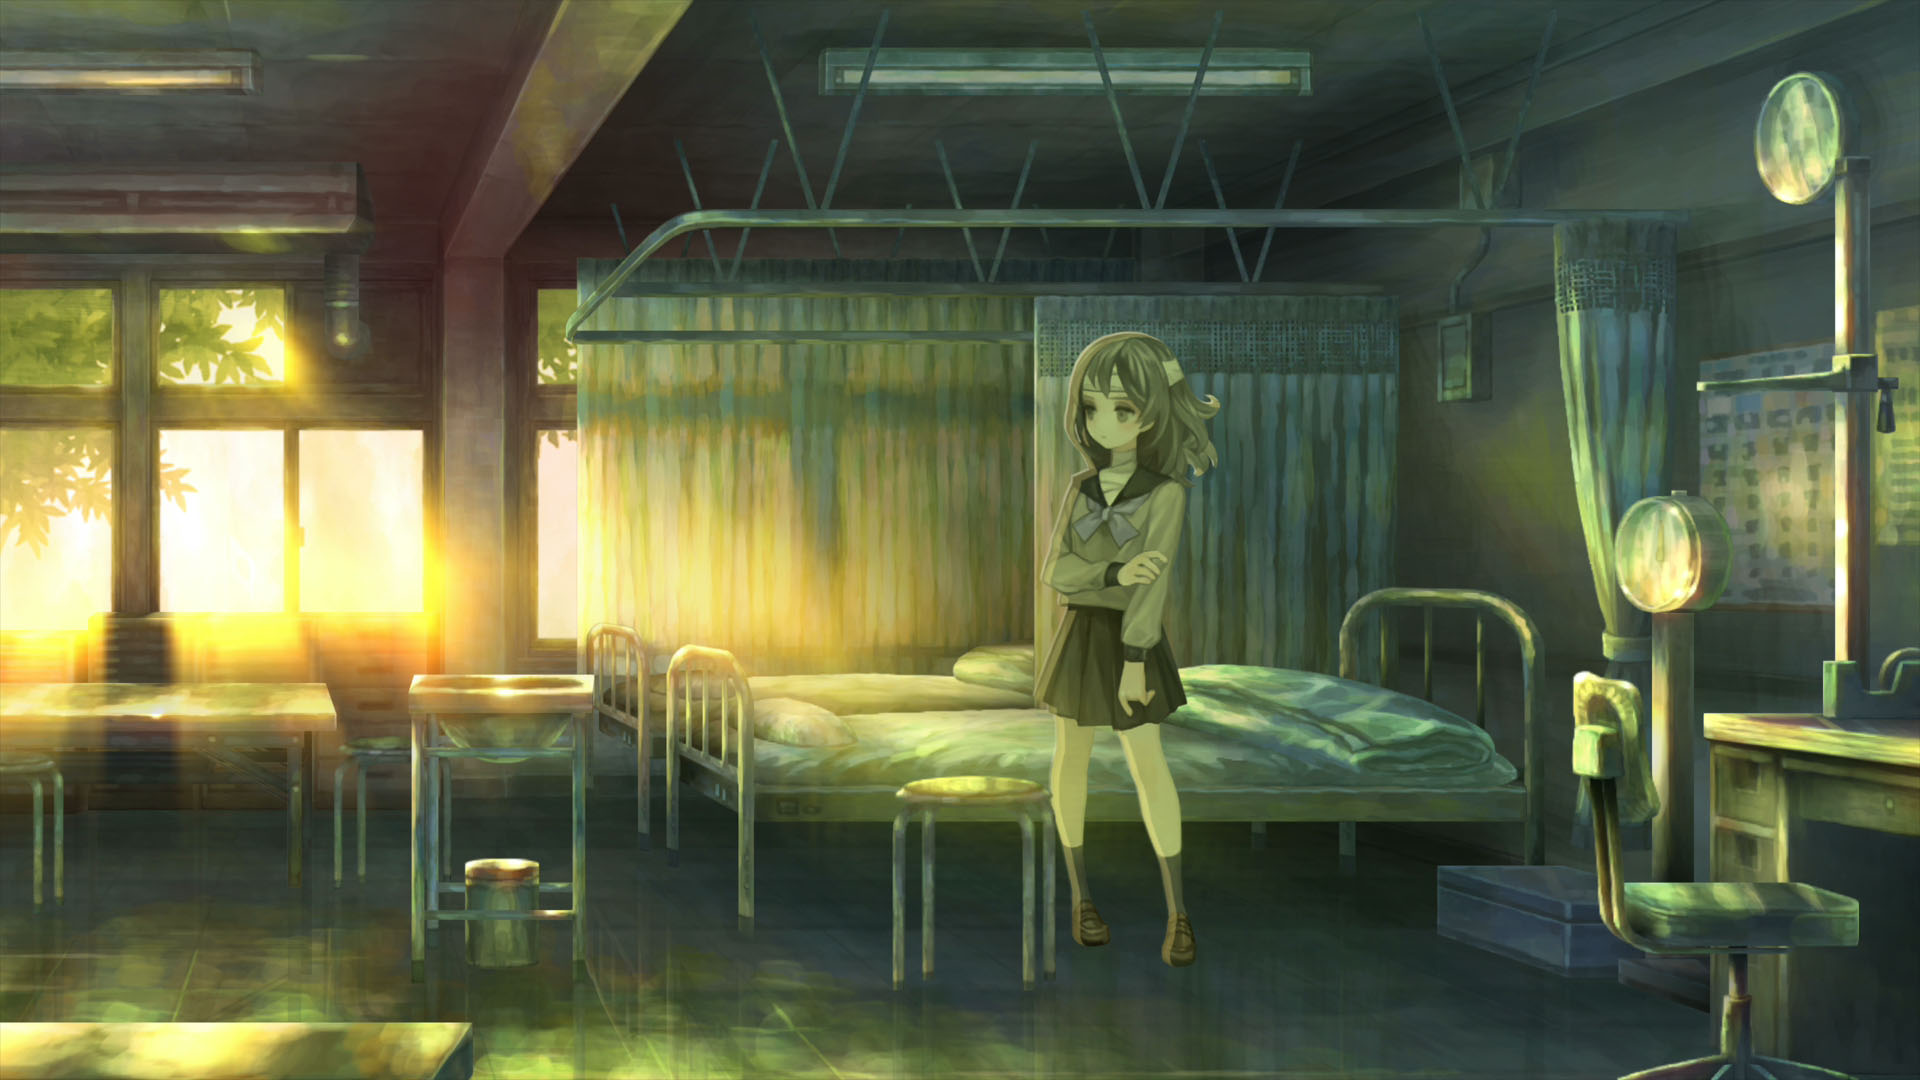 A young woman stands in front of her bed in a dimly-lit room in 13 Sentinels: Aegis Rim.